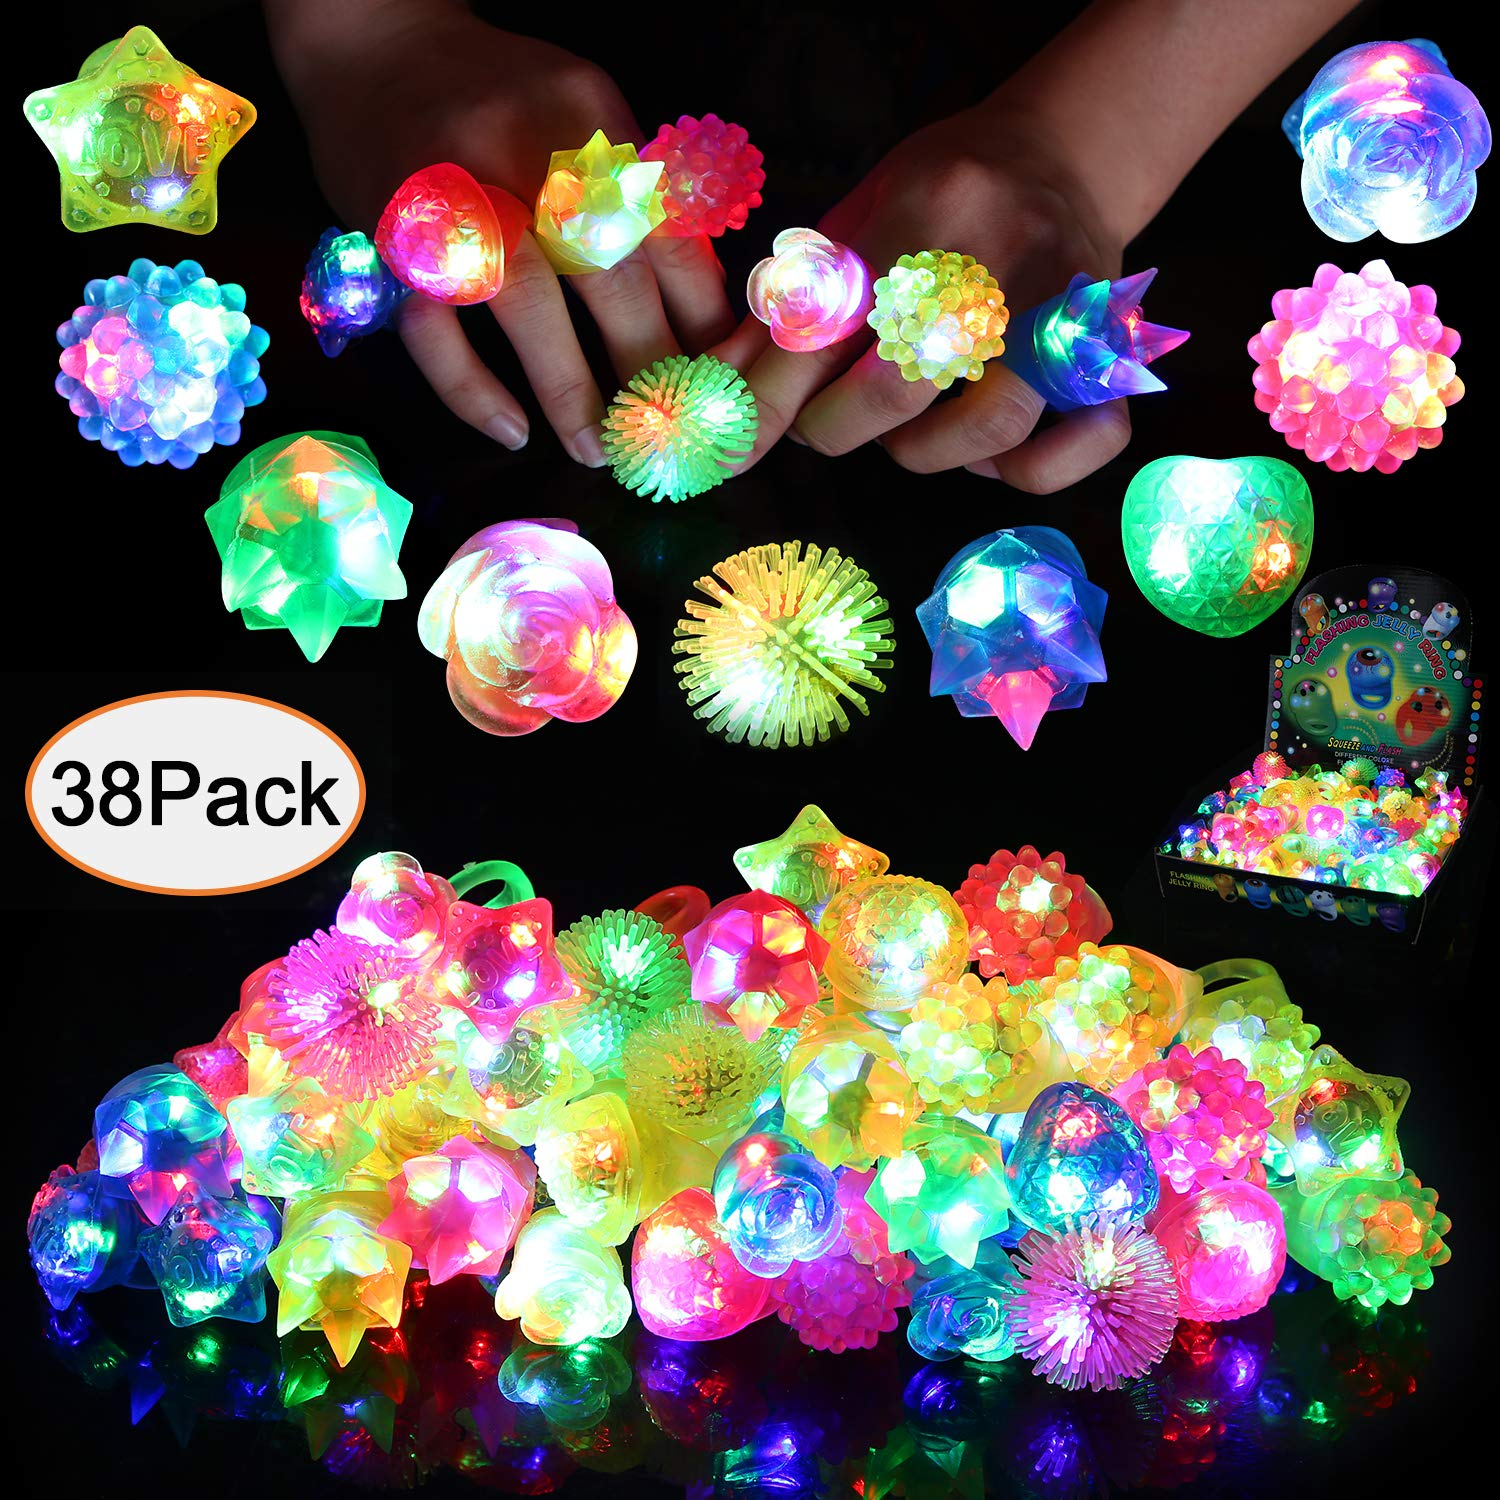 Neovoo Prizes for Kids Party Favors 38 Pack FlashingLED Light Up Rings Classroom Prizes Glow in The Dark Party Supplies Jelly Novelty Play Rings Bulk Toys Birthday Celebration Gifts by Neovoo